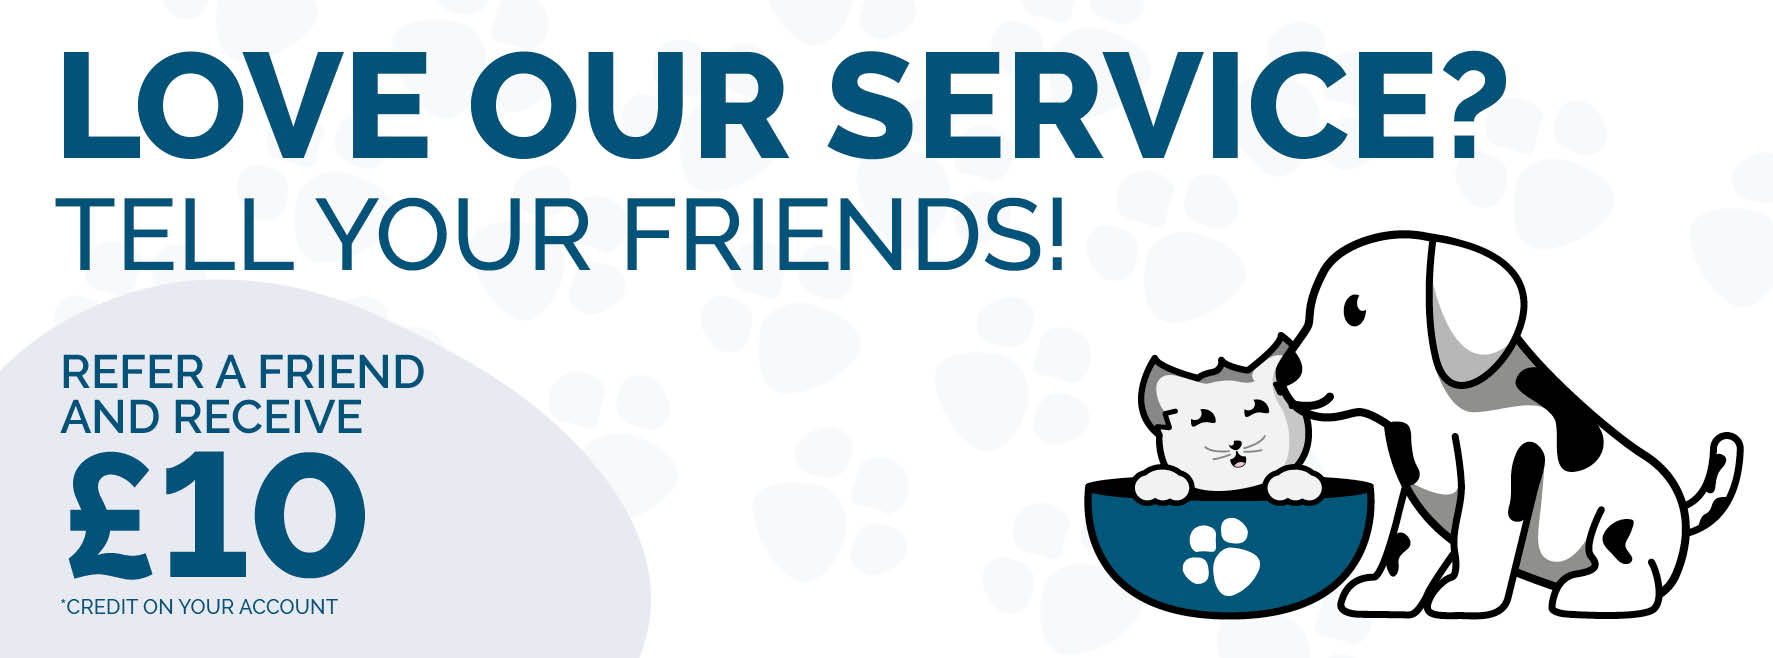 Love our service? Tell your friends!